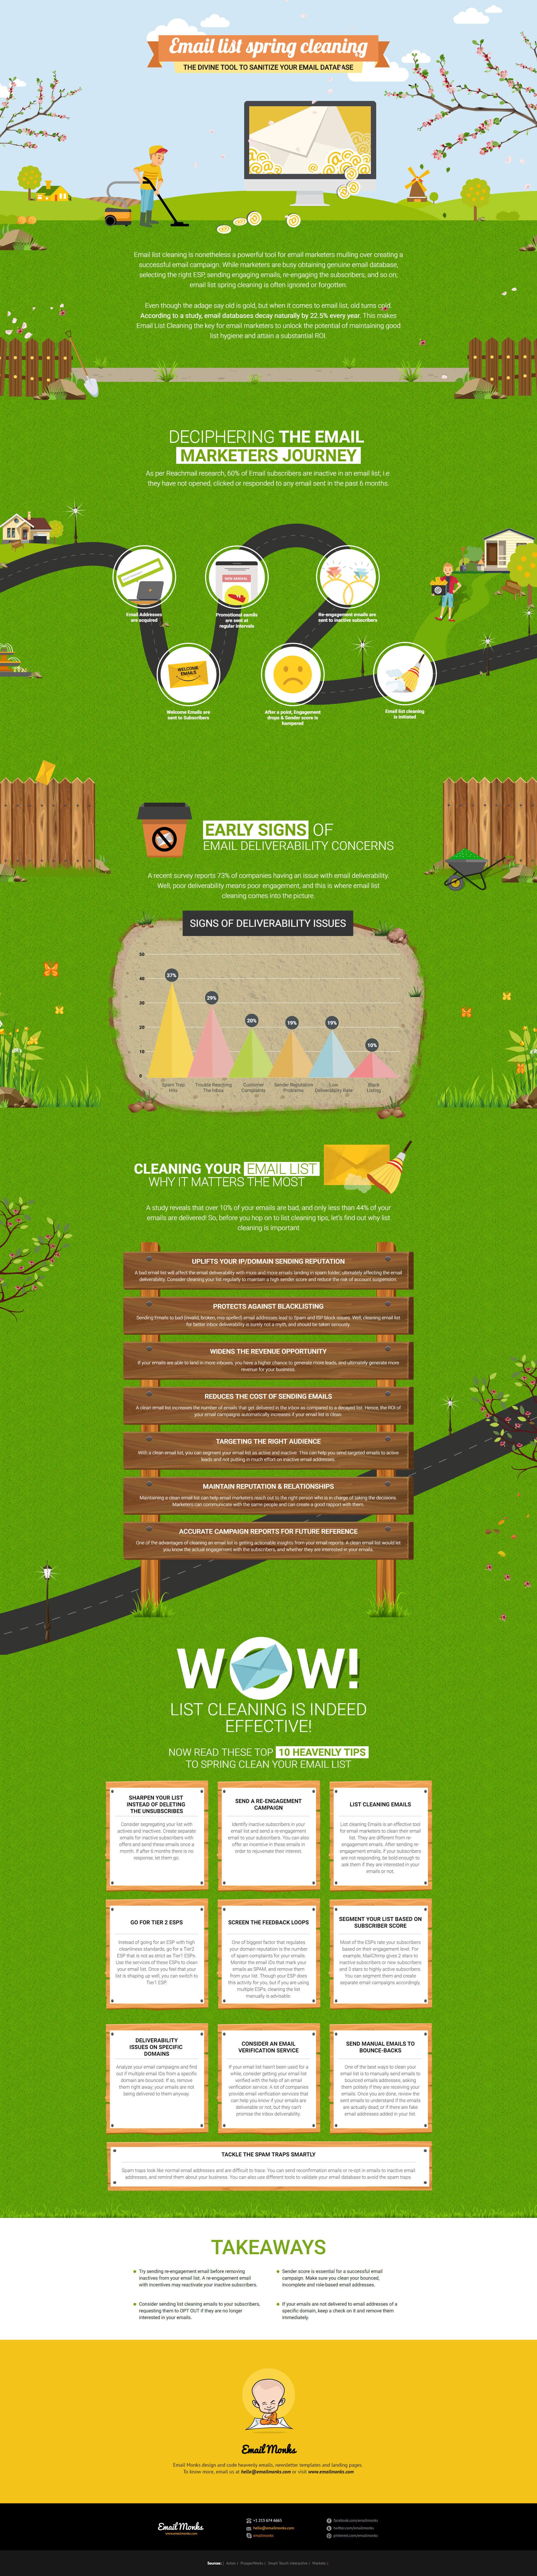 Email List Cleaning Infographic